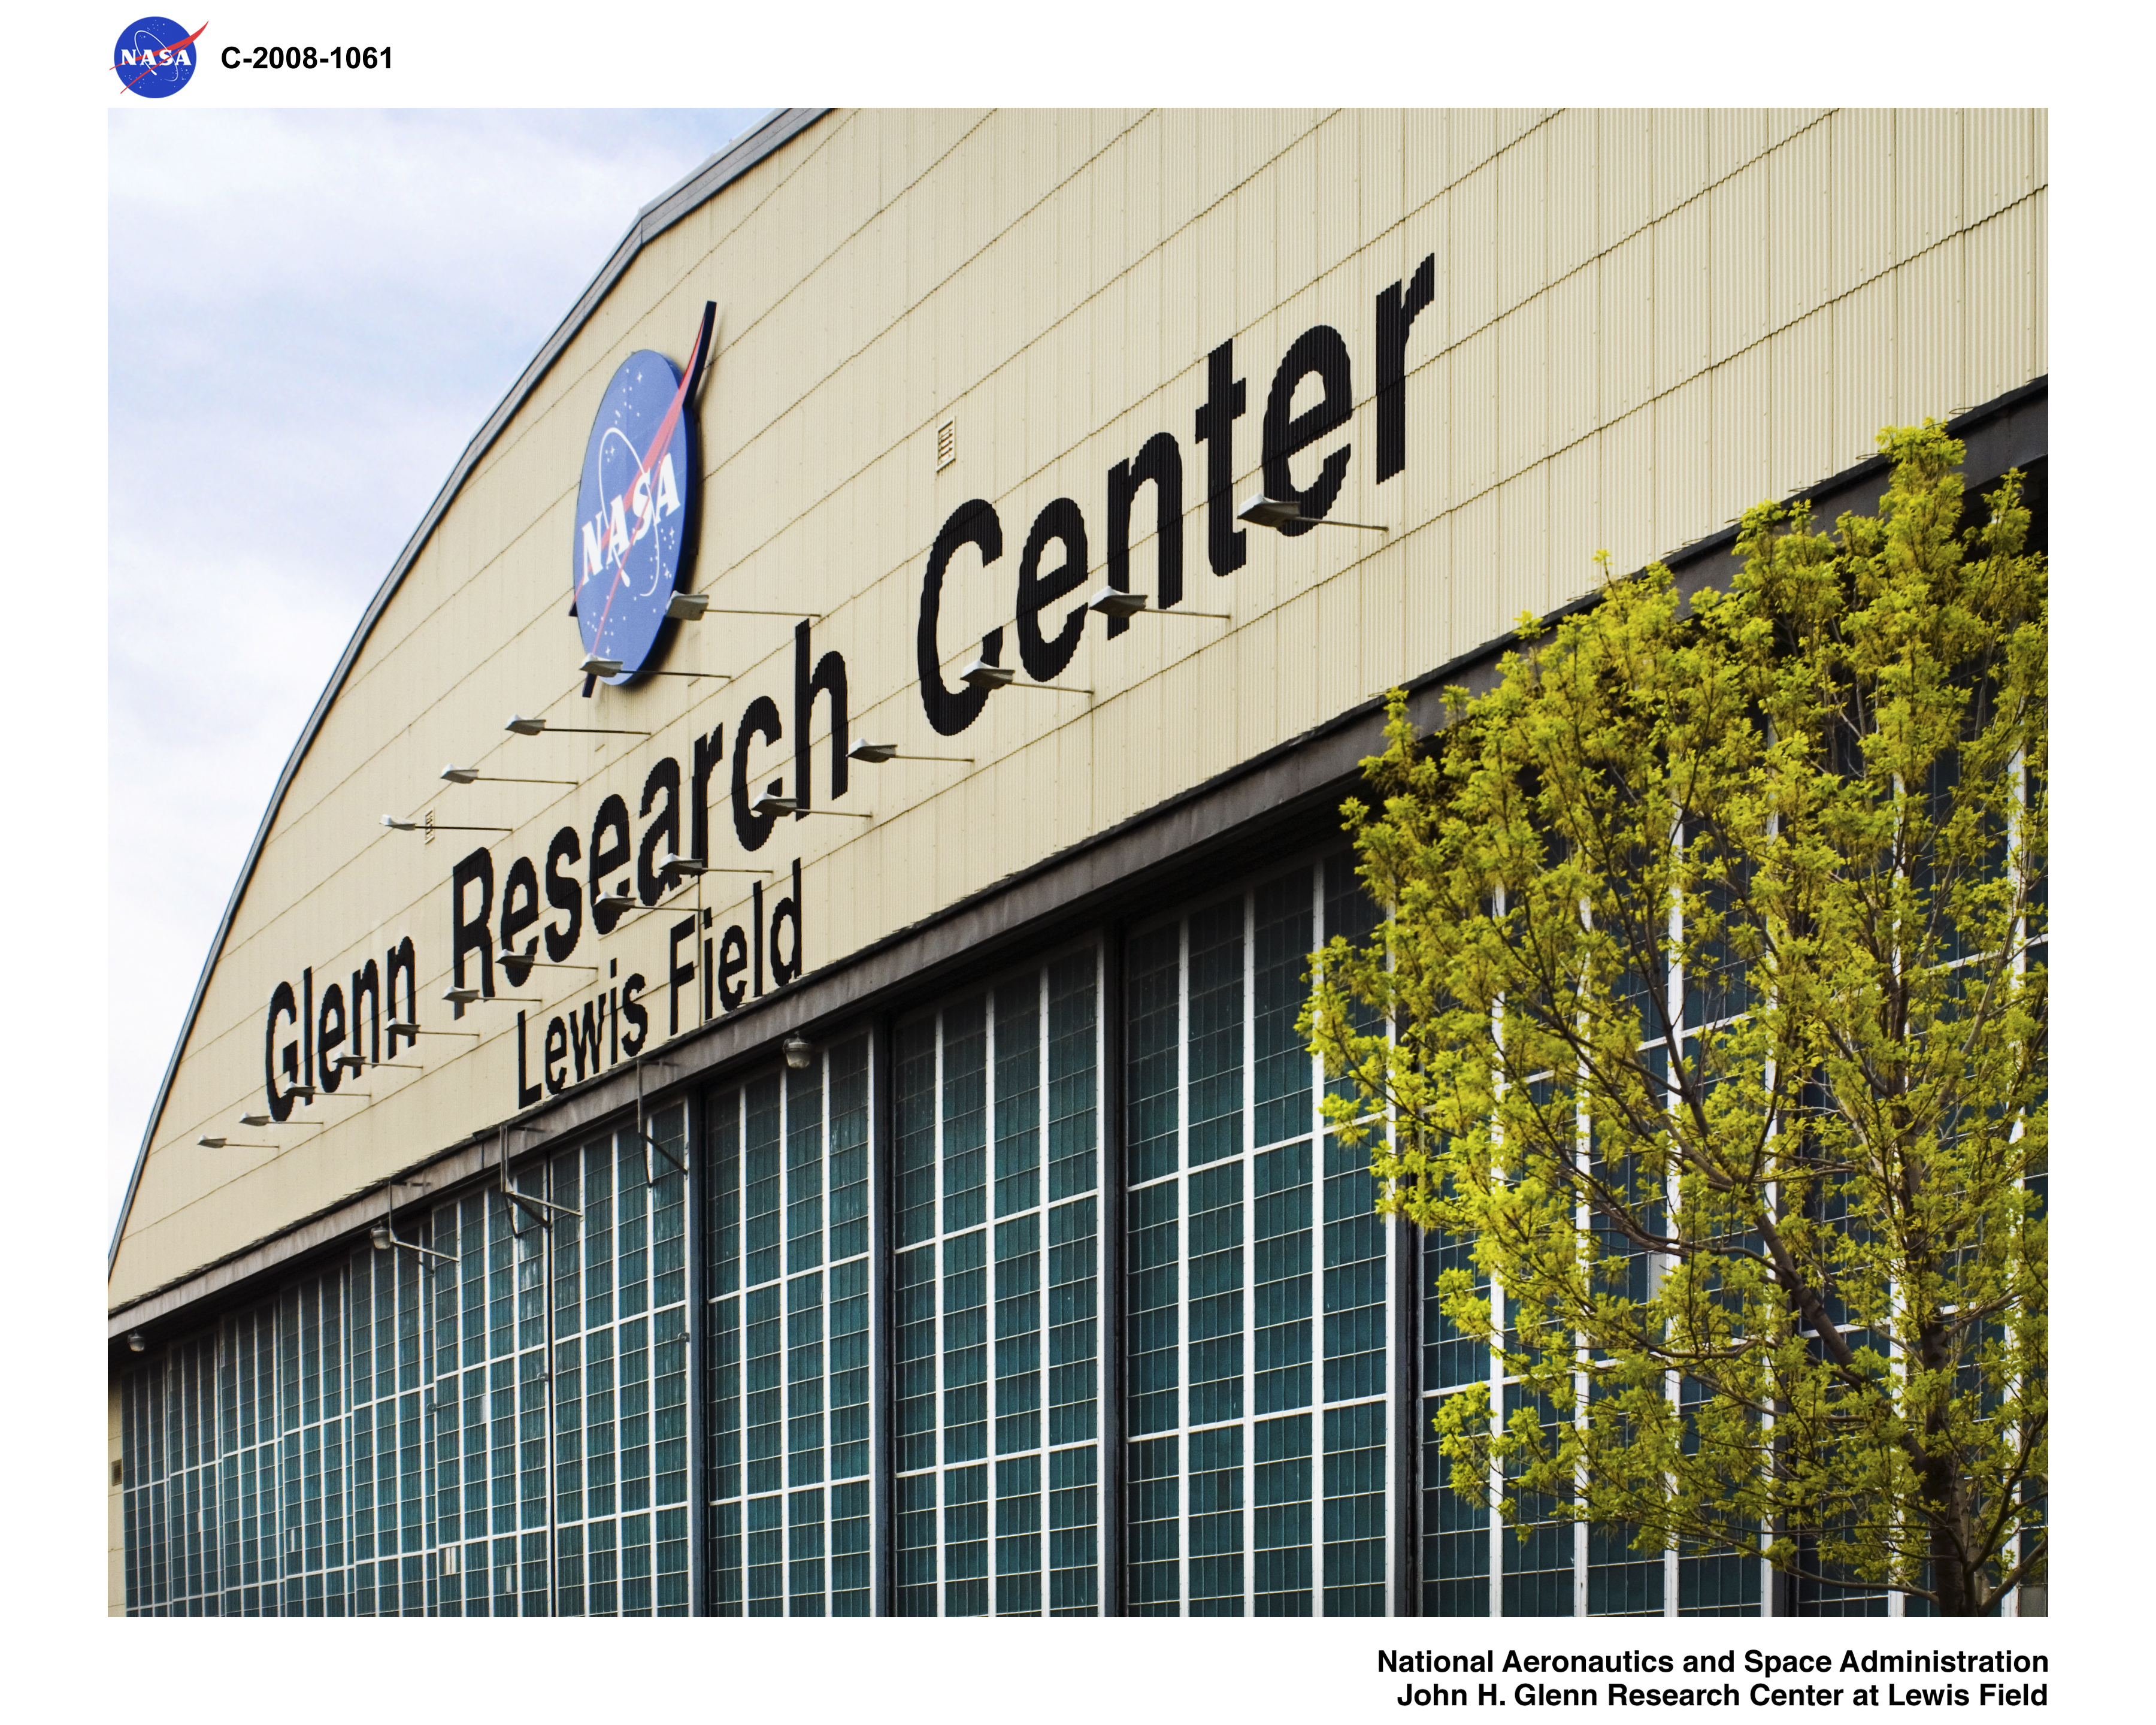 Photo of Glenn Research Center Hanger from the NASA image Library